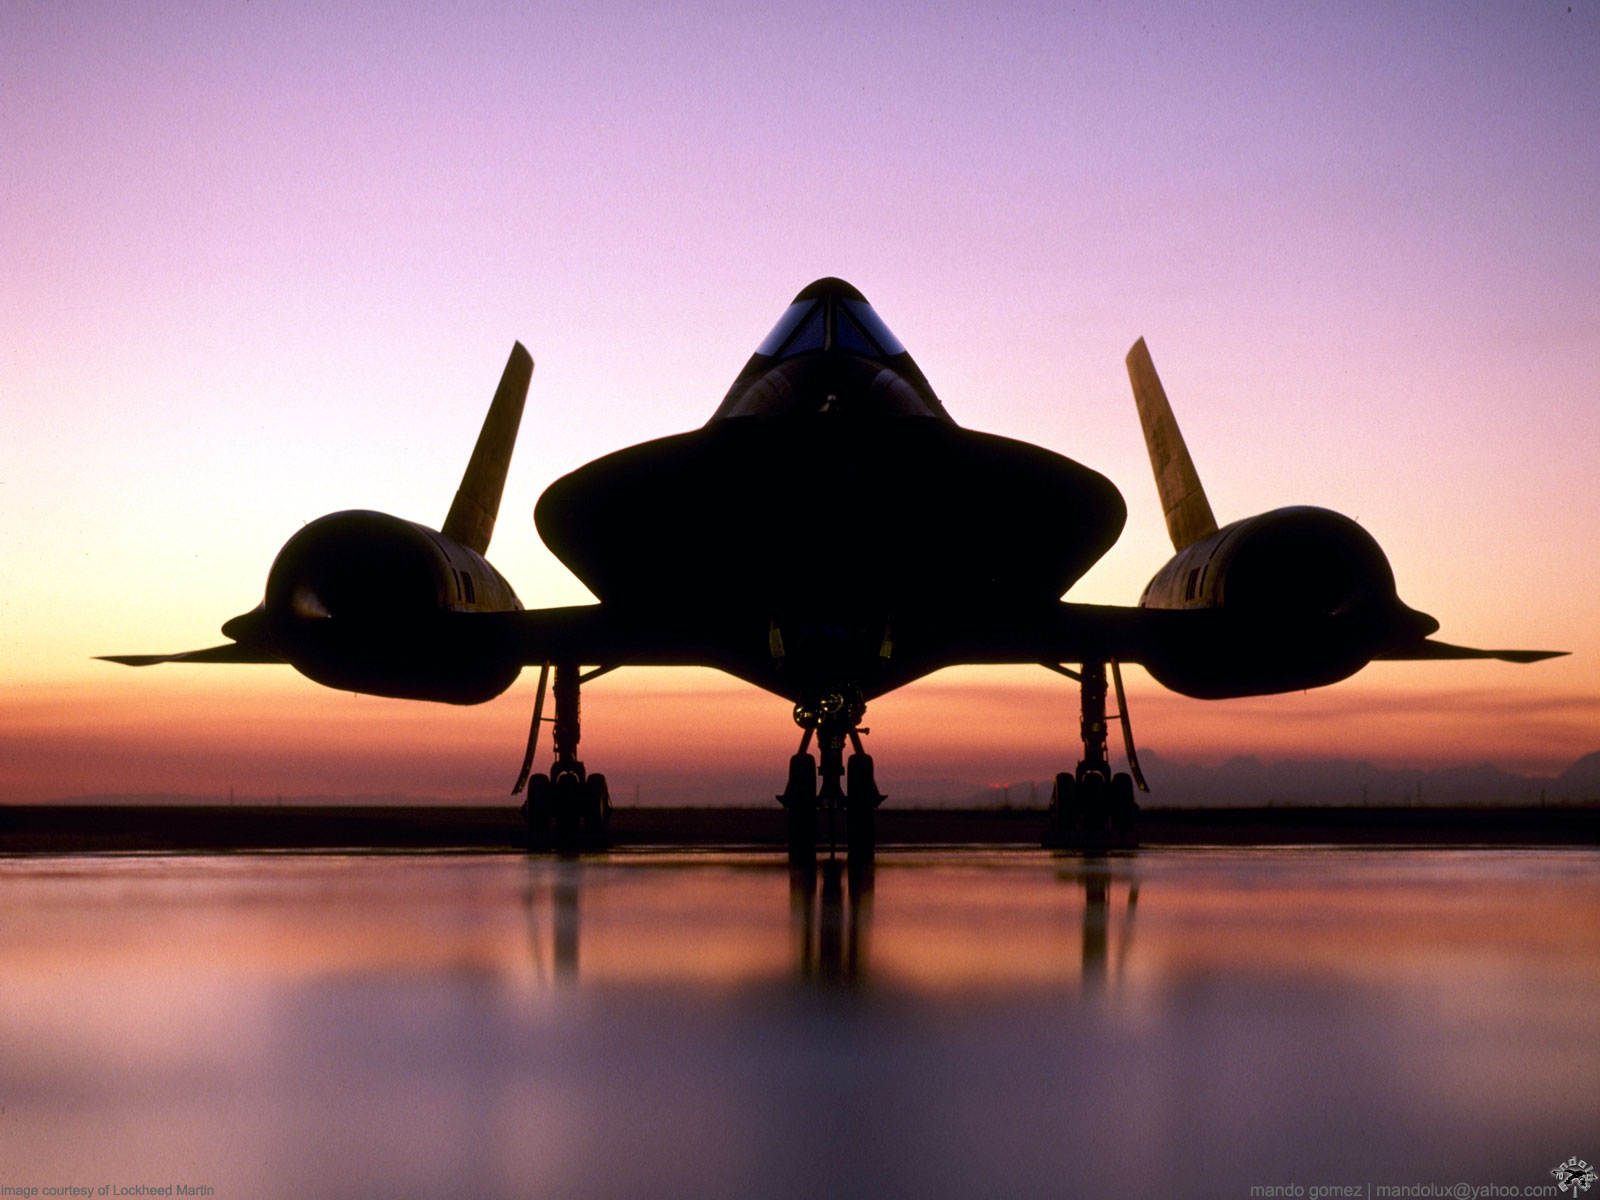 Military wallpapers sr 71 wallpapers - Sr 71 wallpaper ...